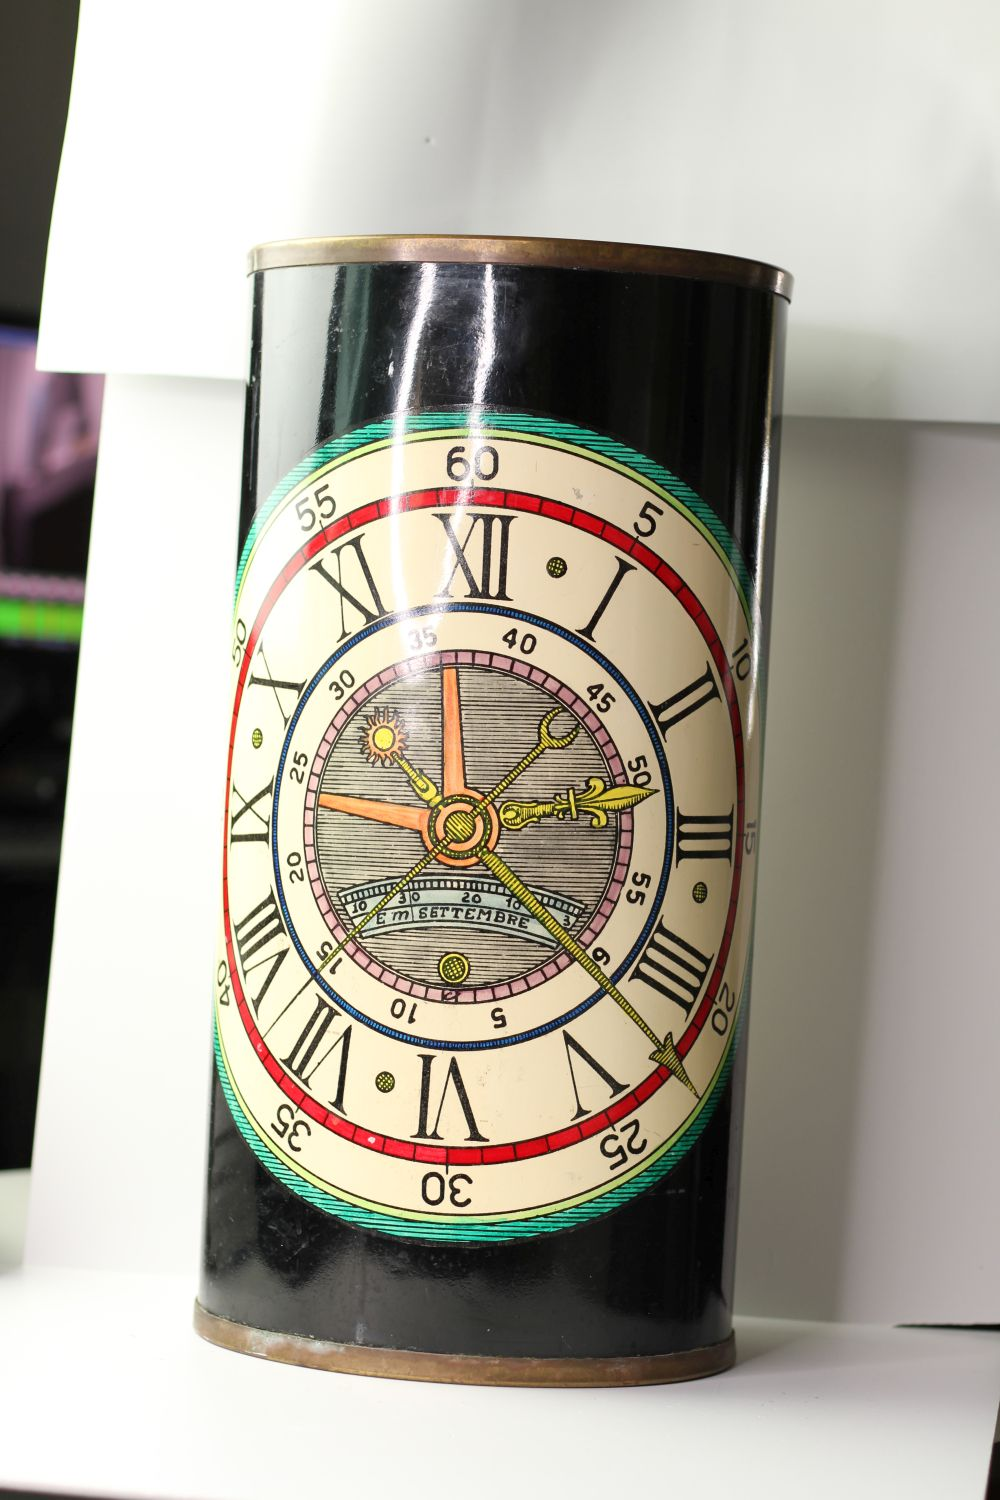 Vintage Fornasetti umbrella stand, lacquer finish with watch face design, sticker to base,